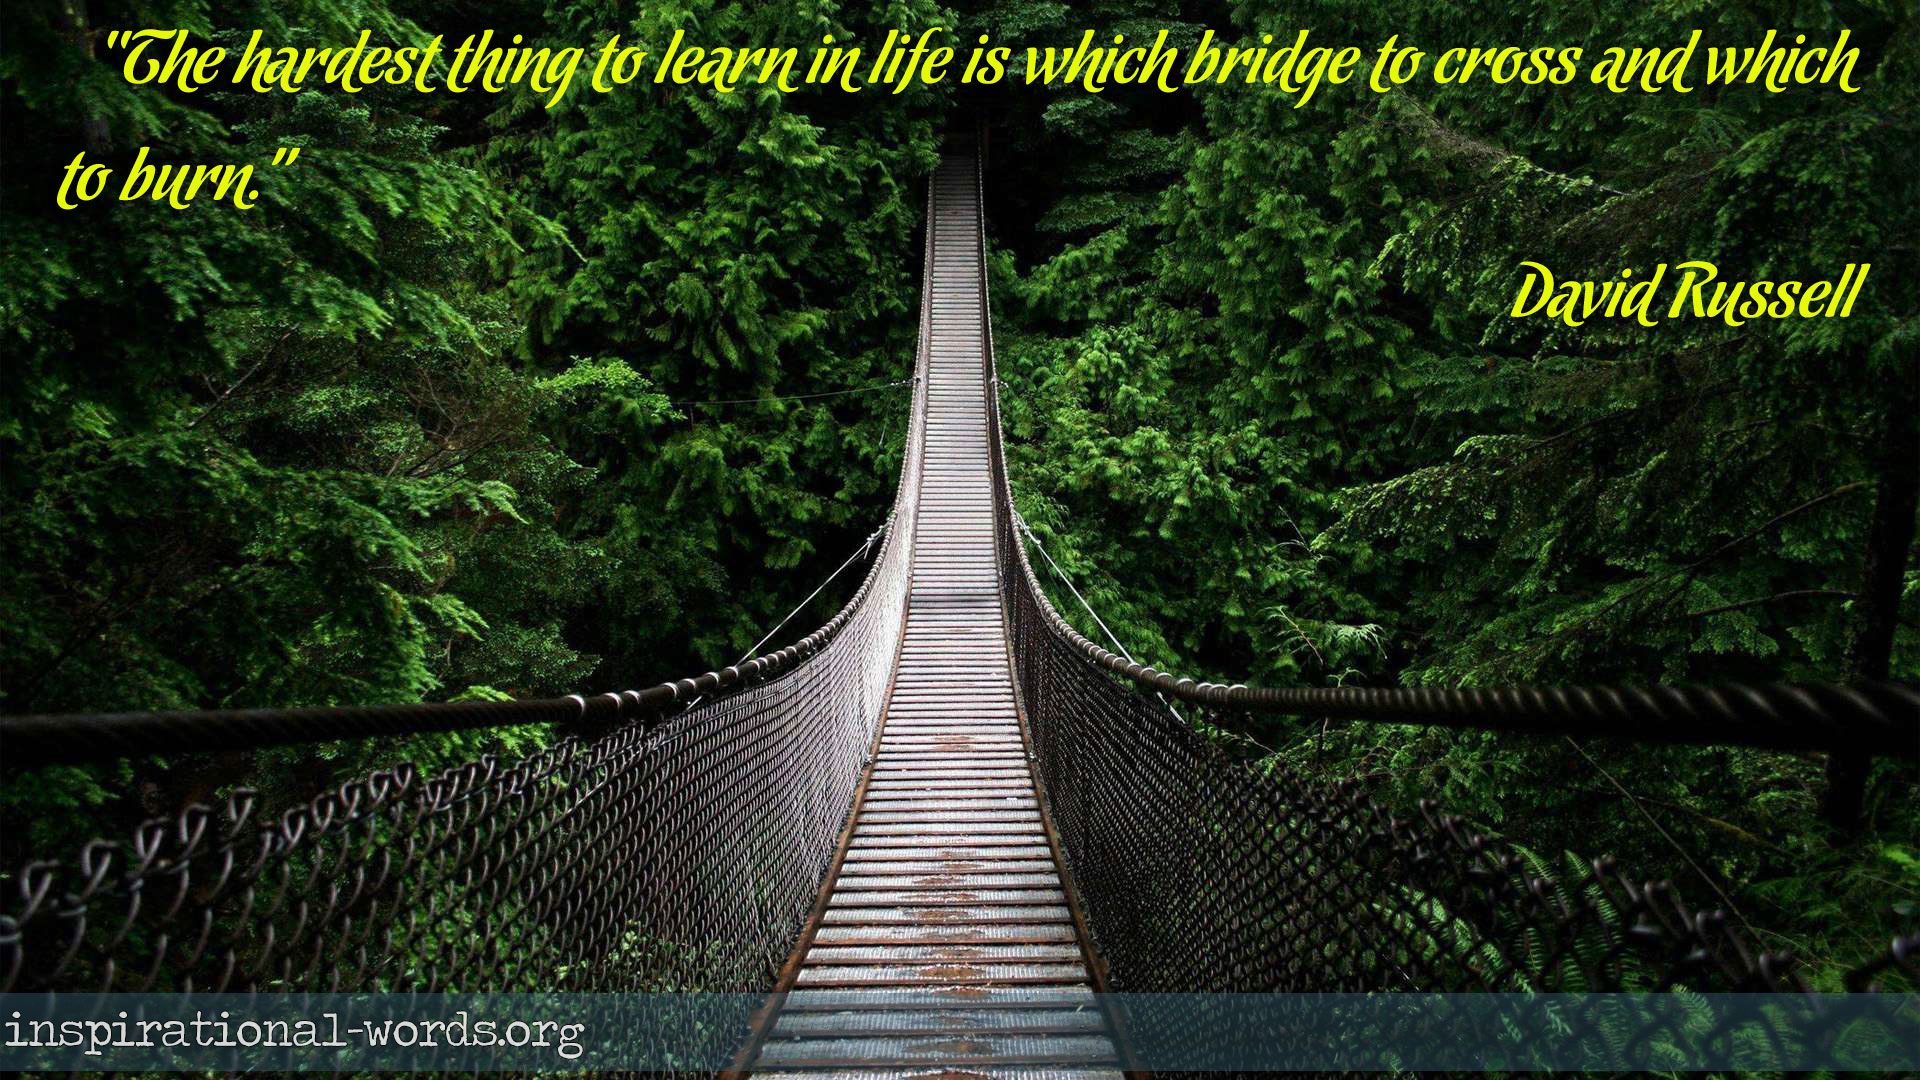 Inspirational Wallpaper Quote by David Russell